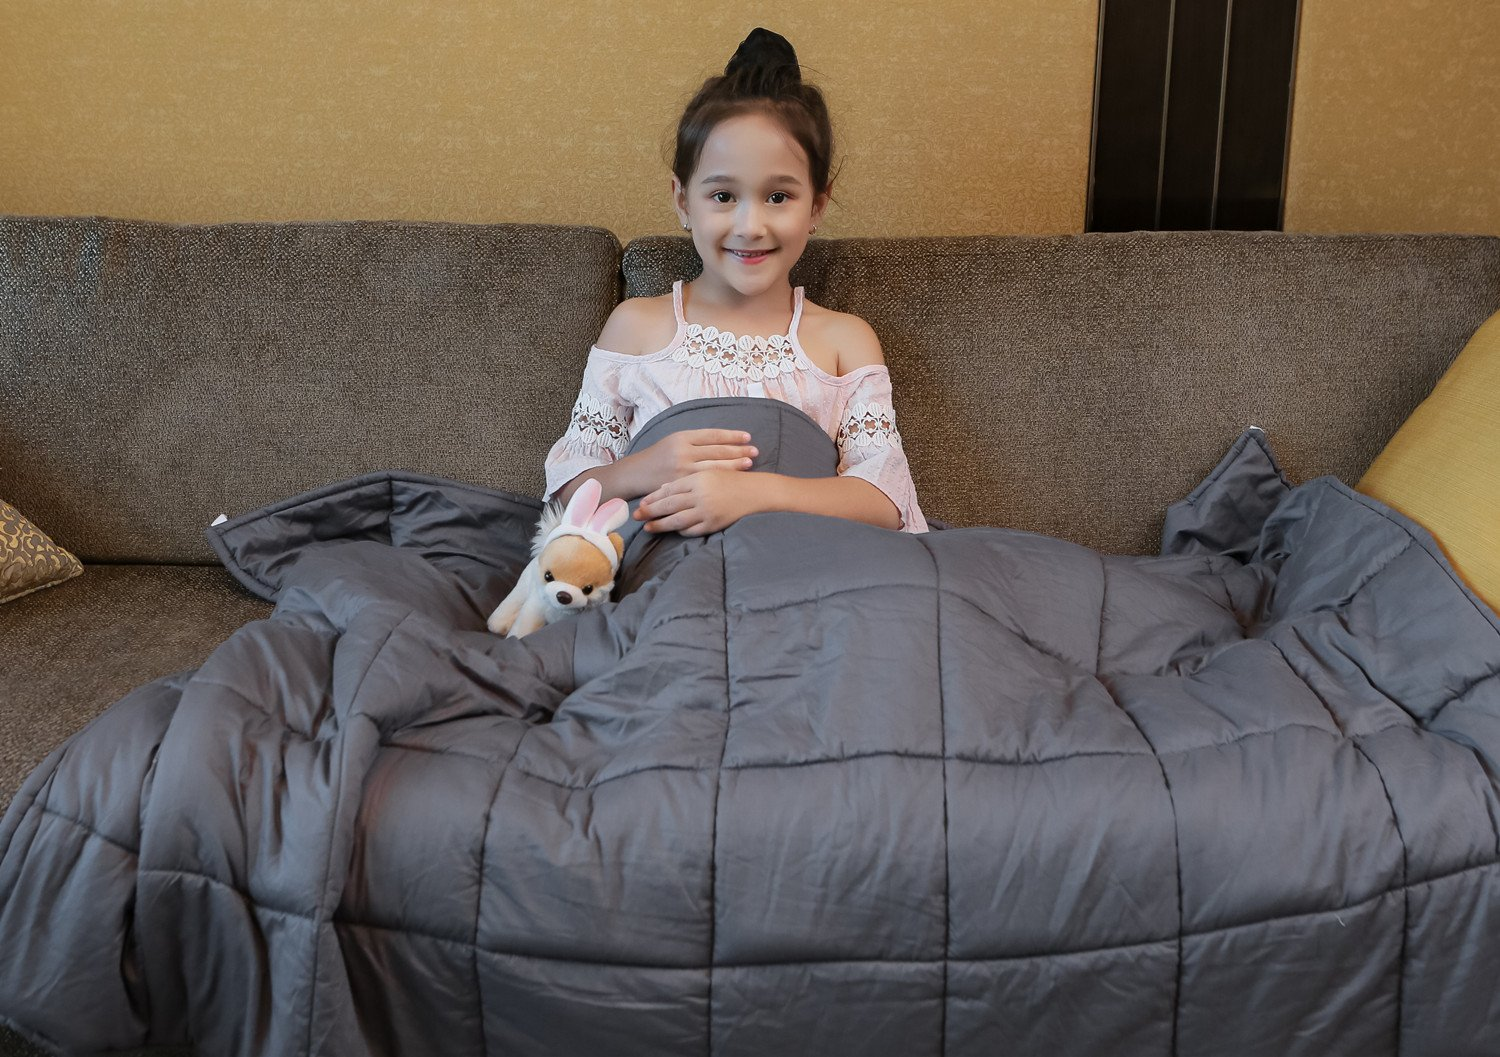 YnM Weighted Blanket Black Friday Deal 2019